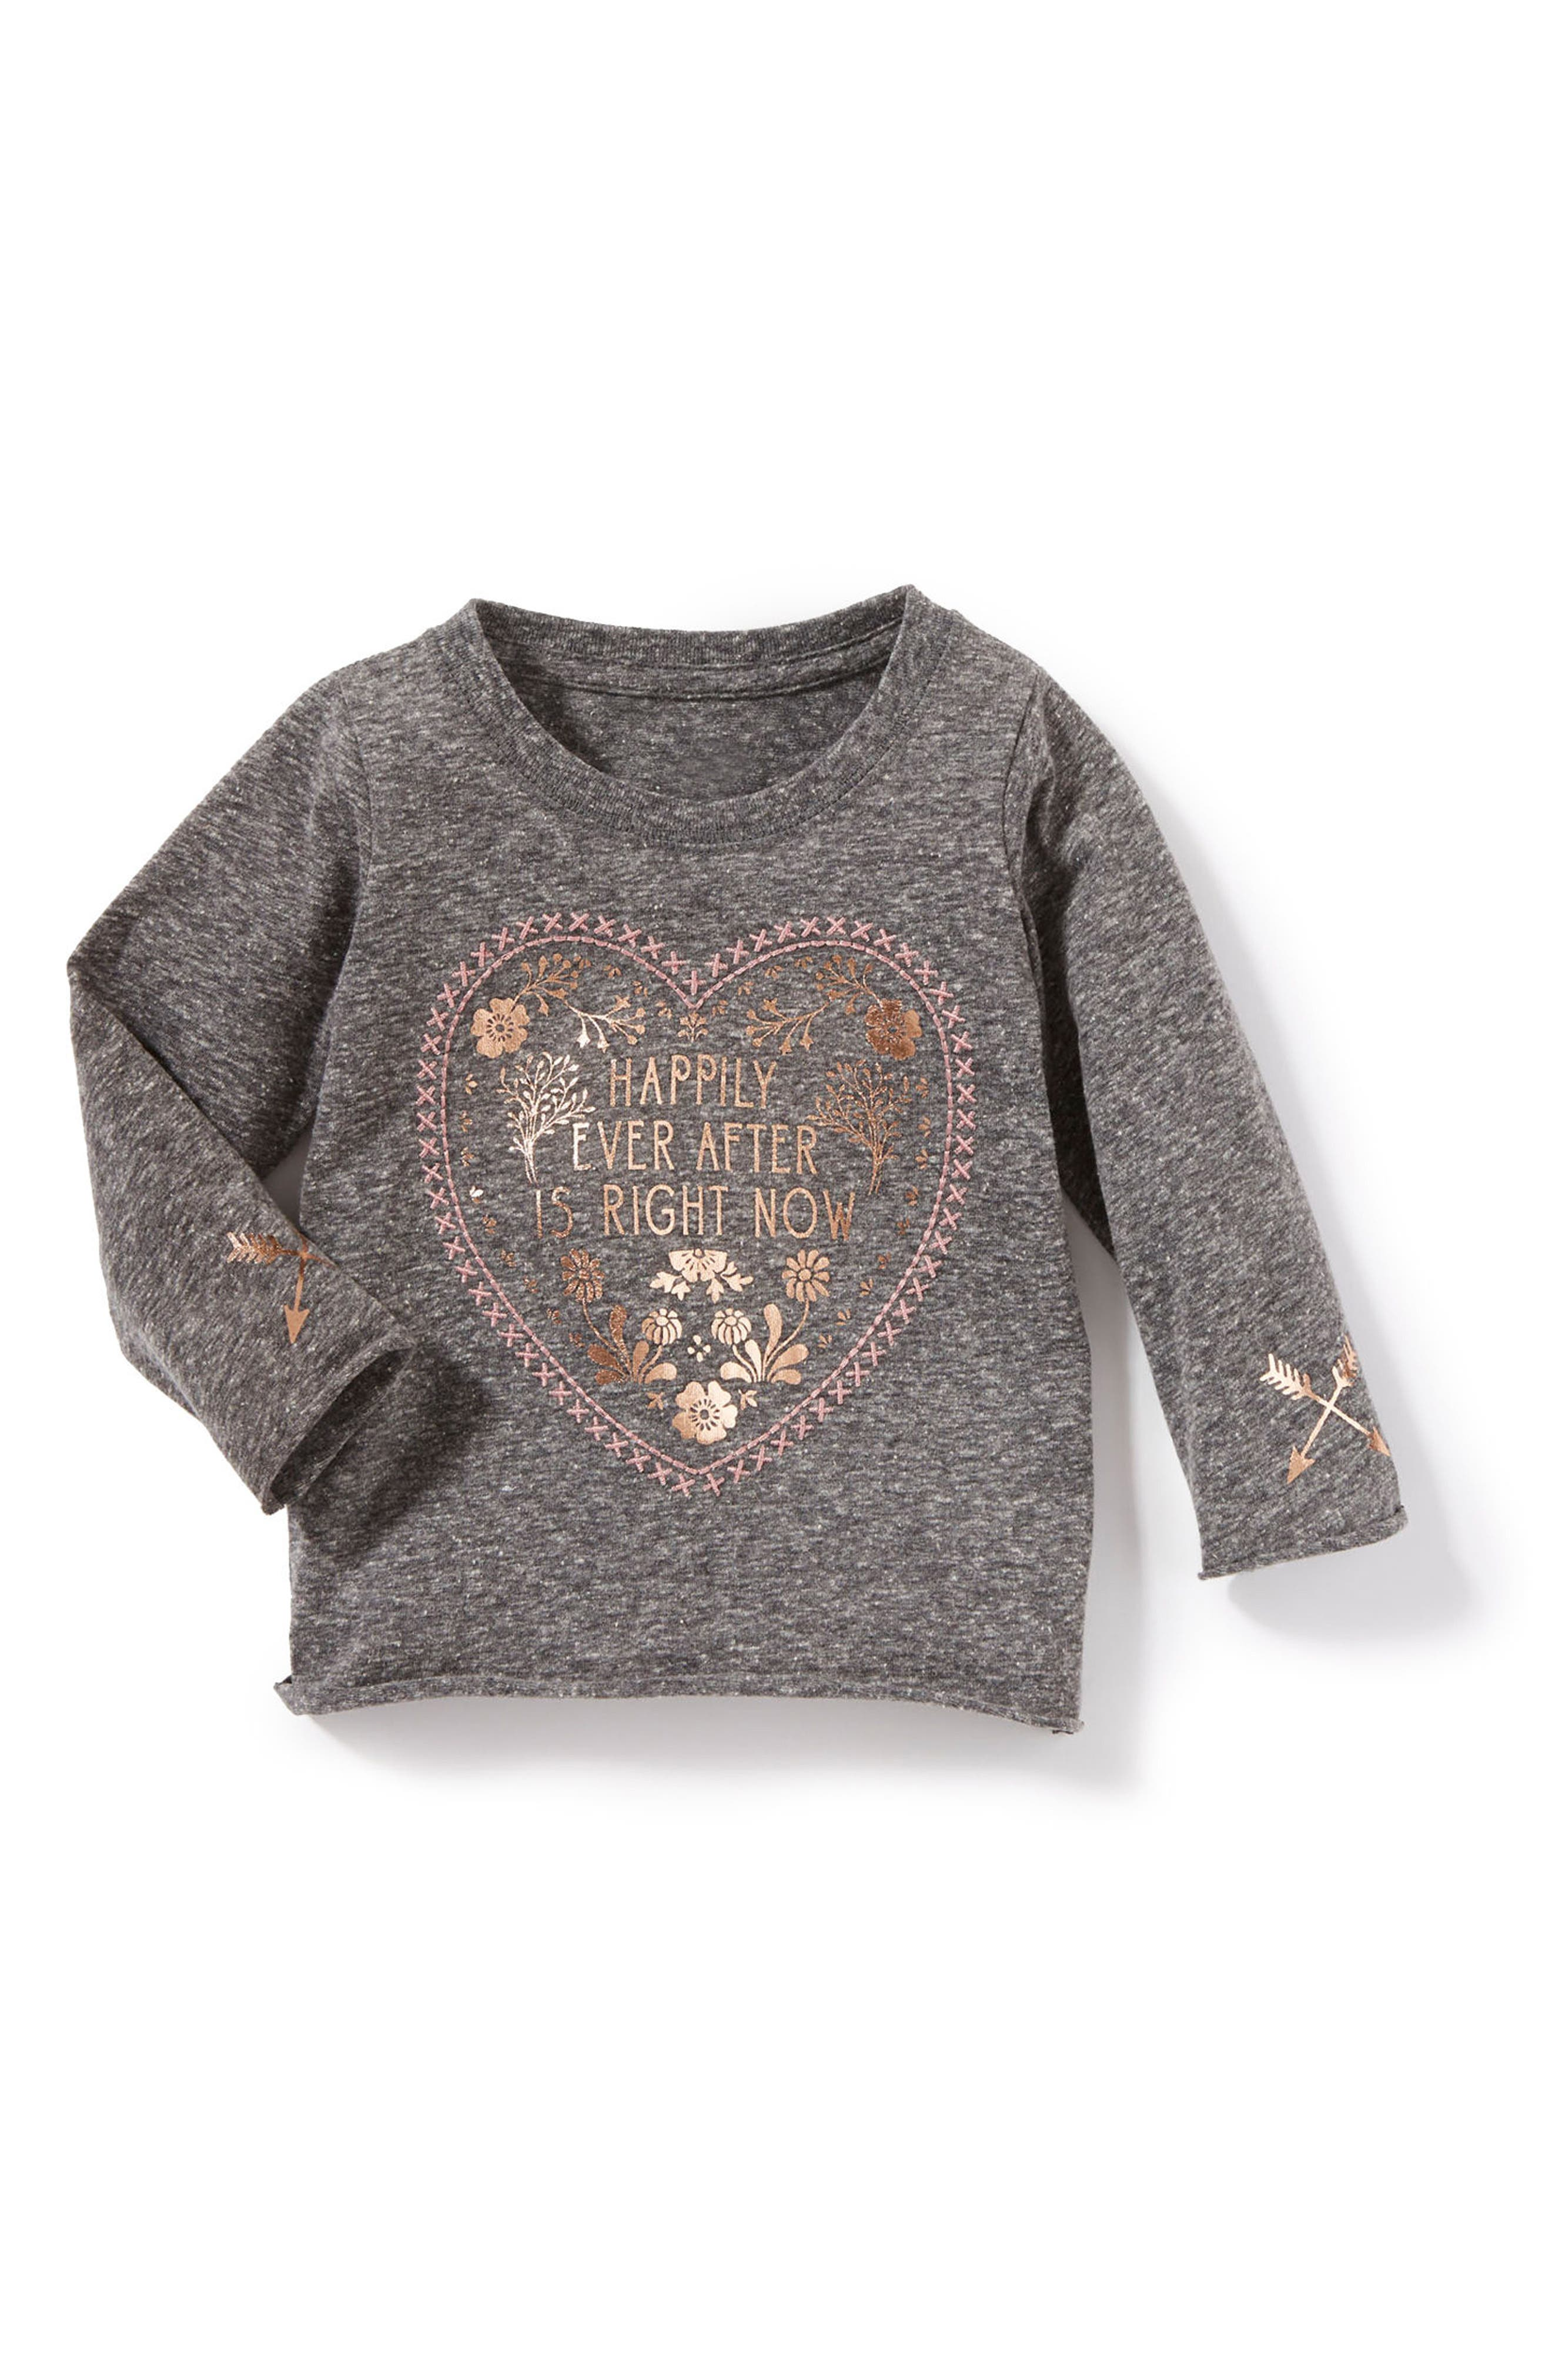 Happily Ever After Graphic Tee,                         Main,                         color,